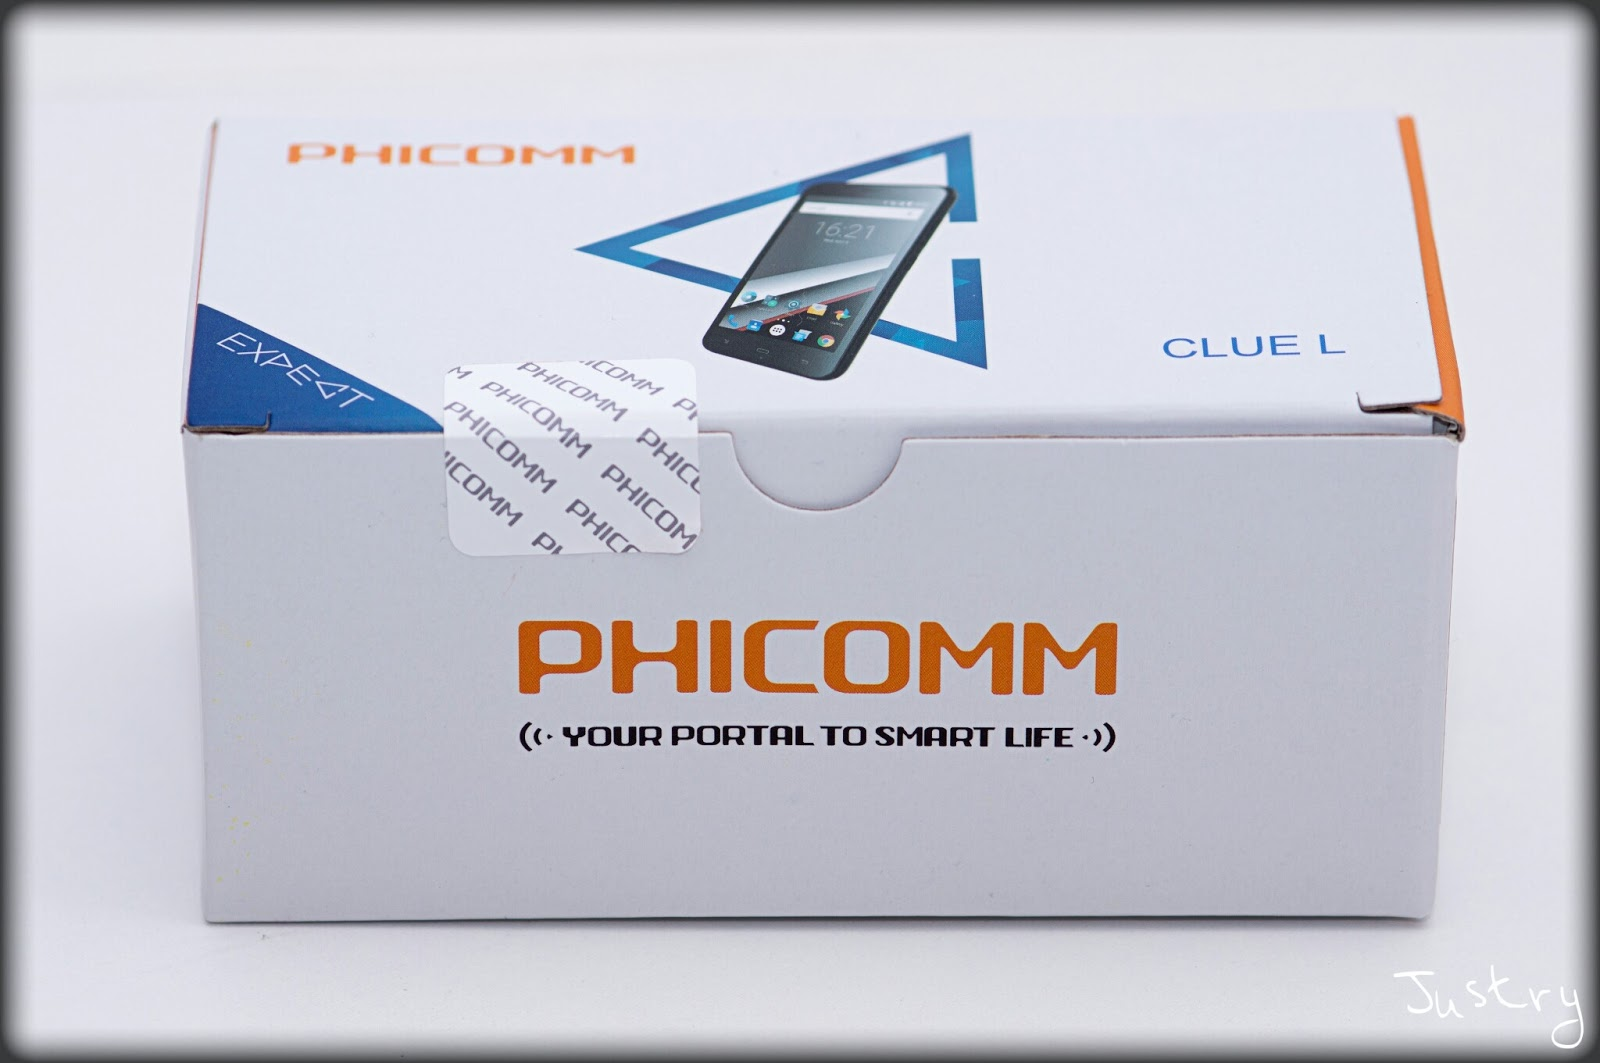 phicomm handy